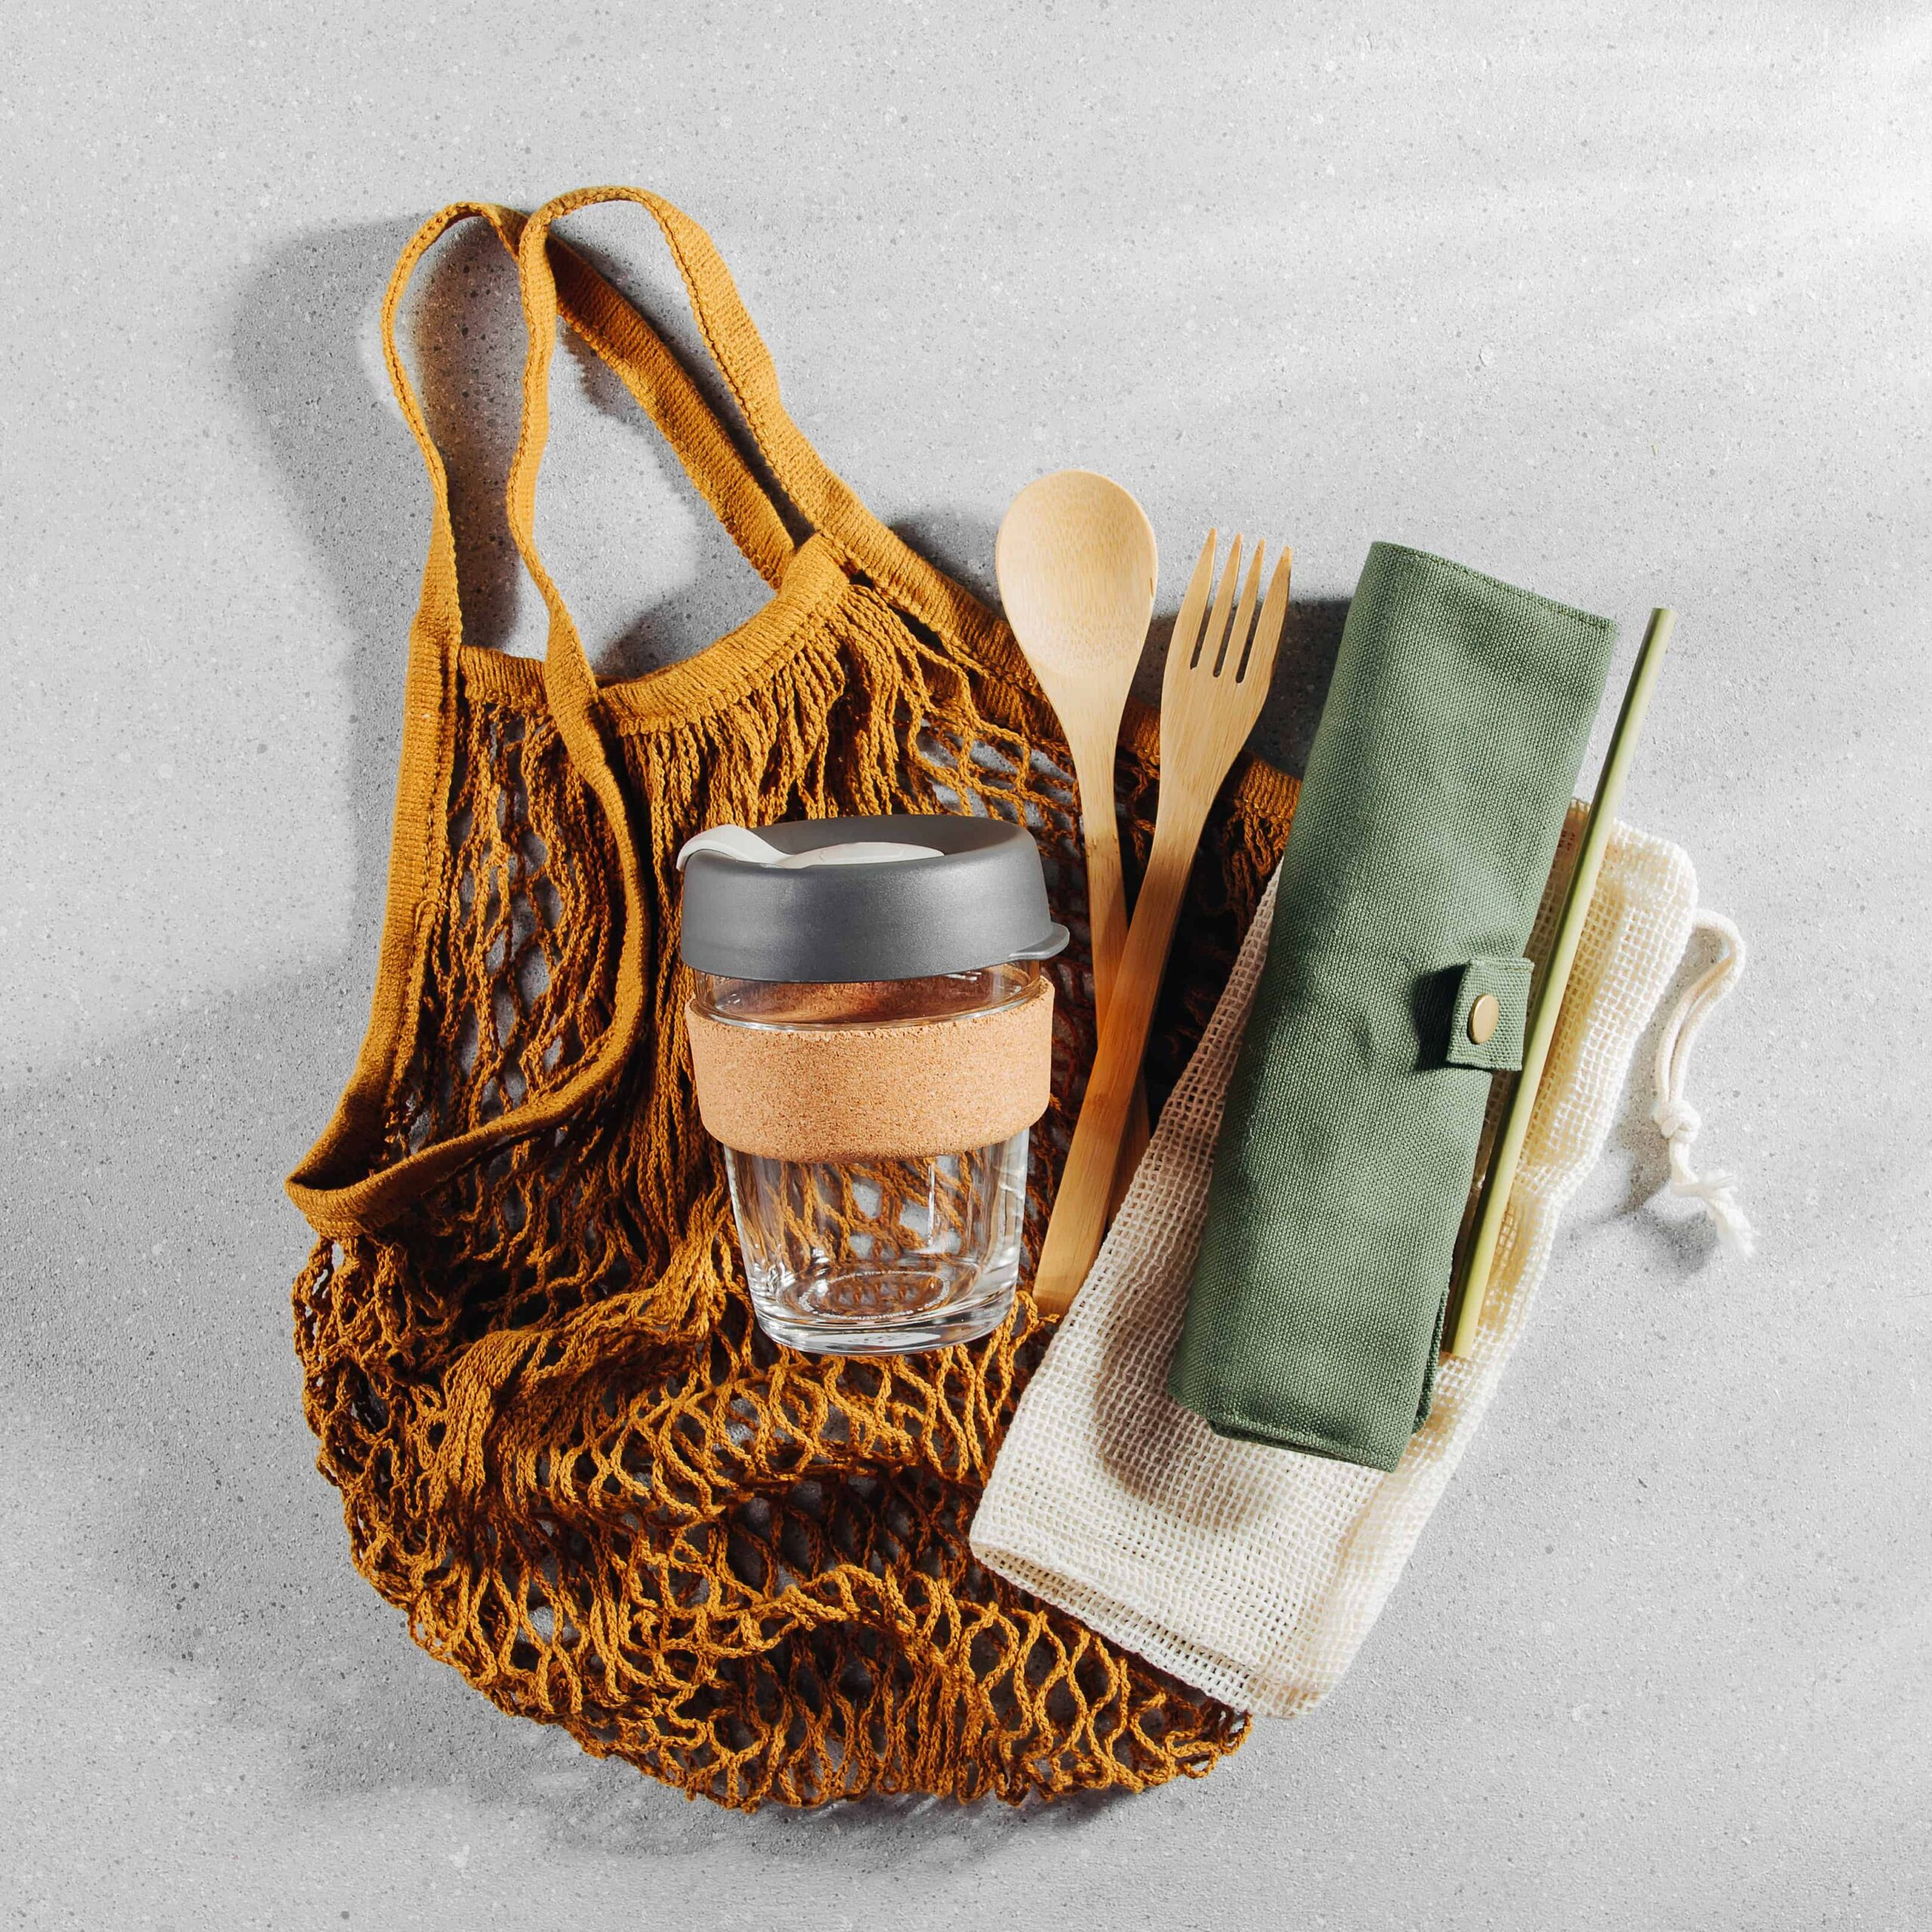 What to Include in Your Zero Waste To-Go Kit